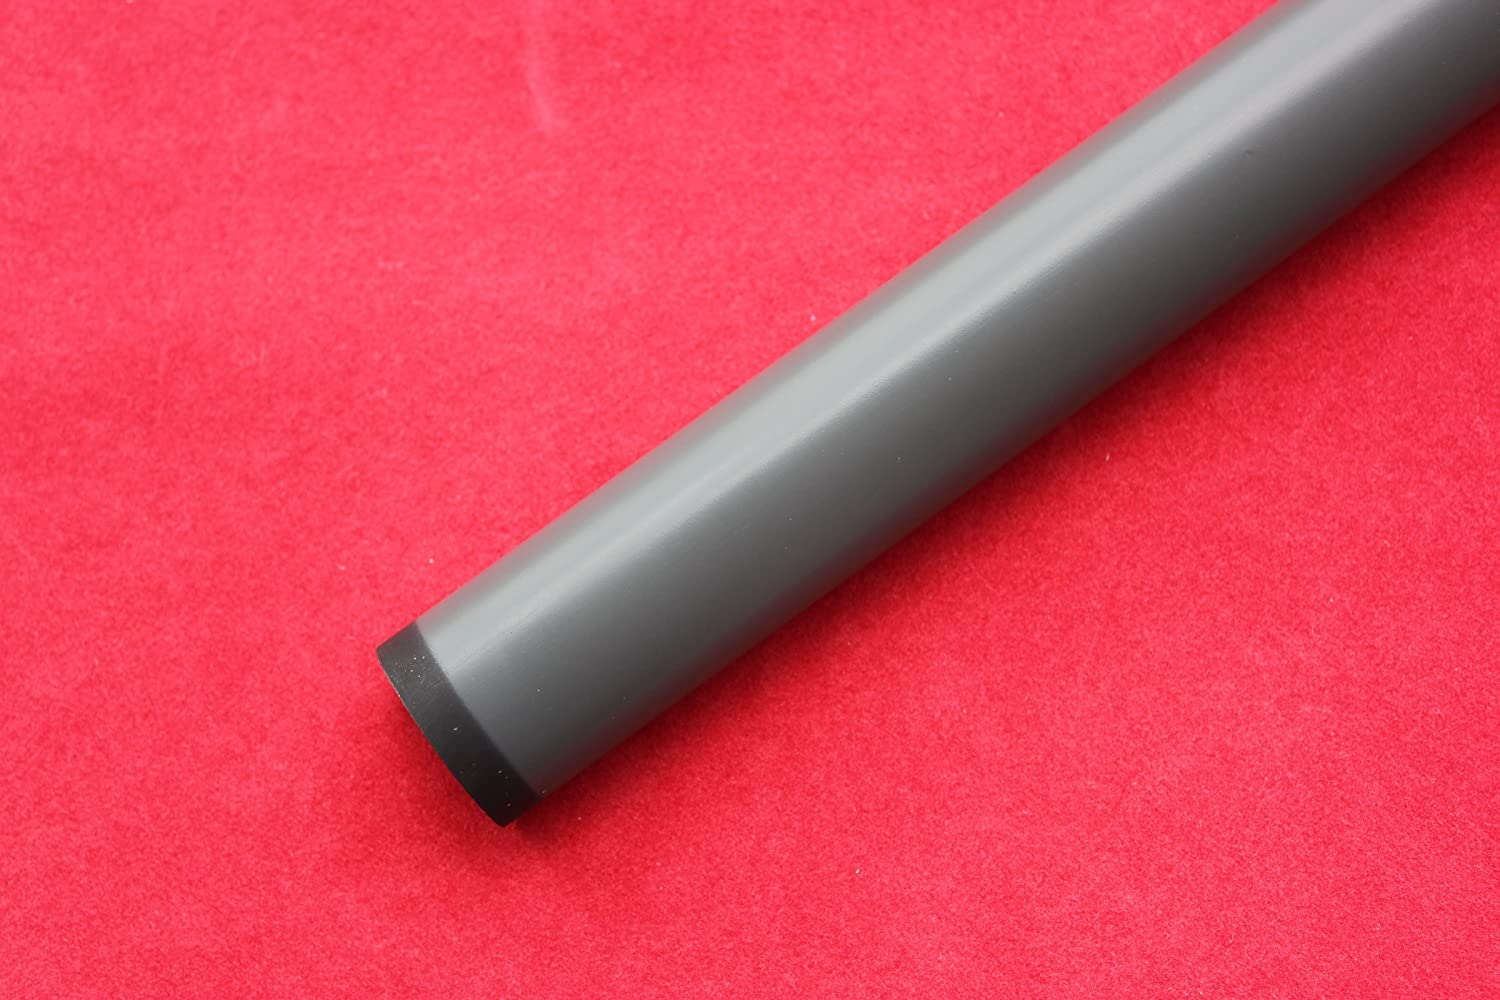 Fuser Film Sleeve for HP 1000 1010 1020 1022 1102 1160 1200 1300 1320 ORIGINAL!